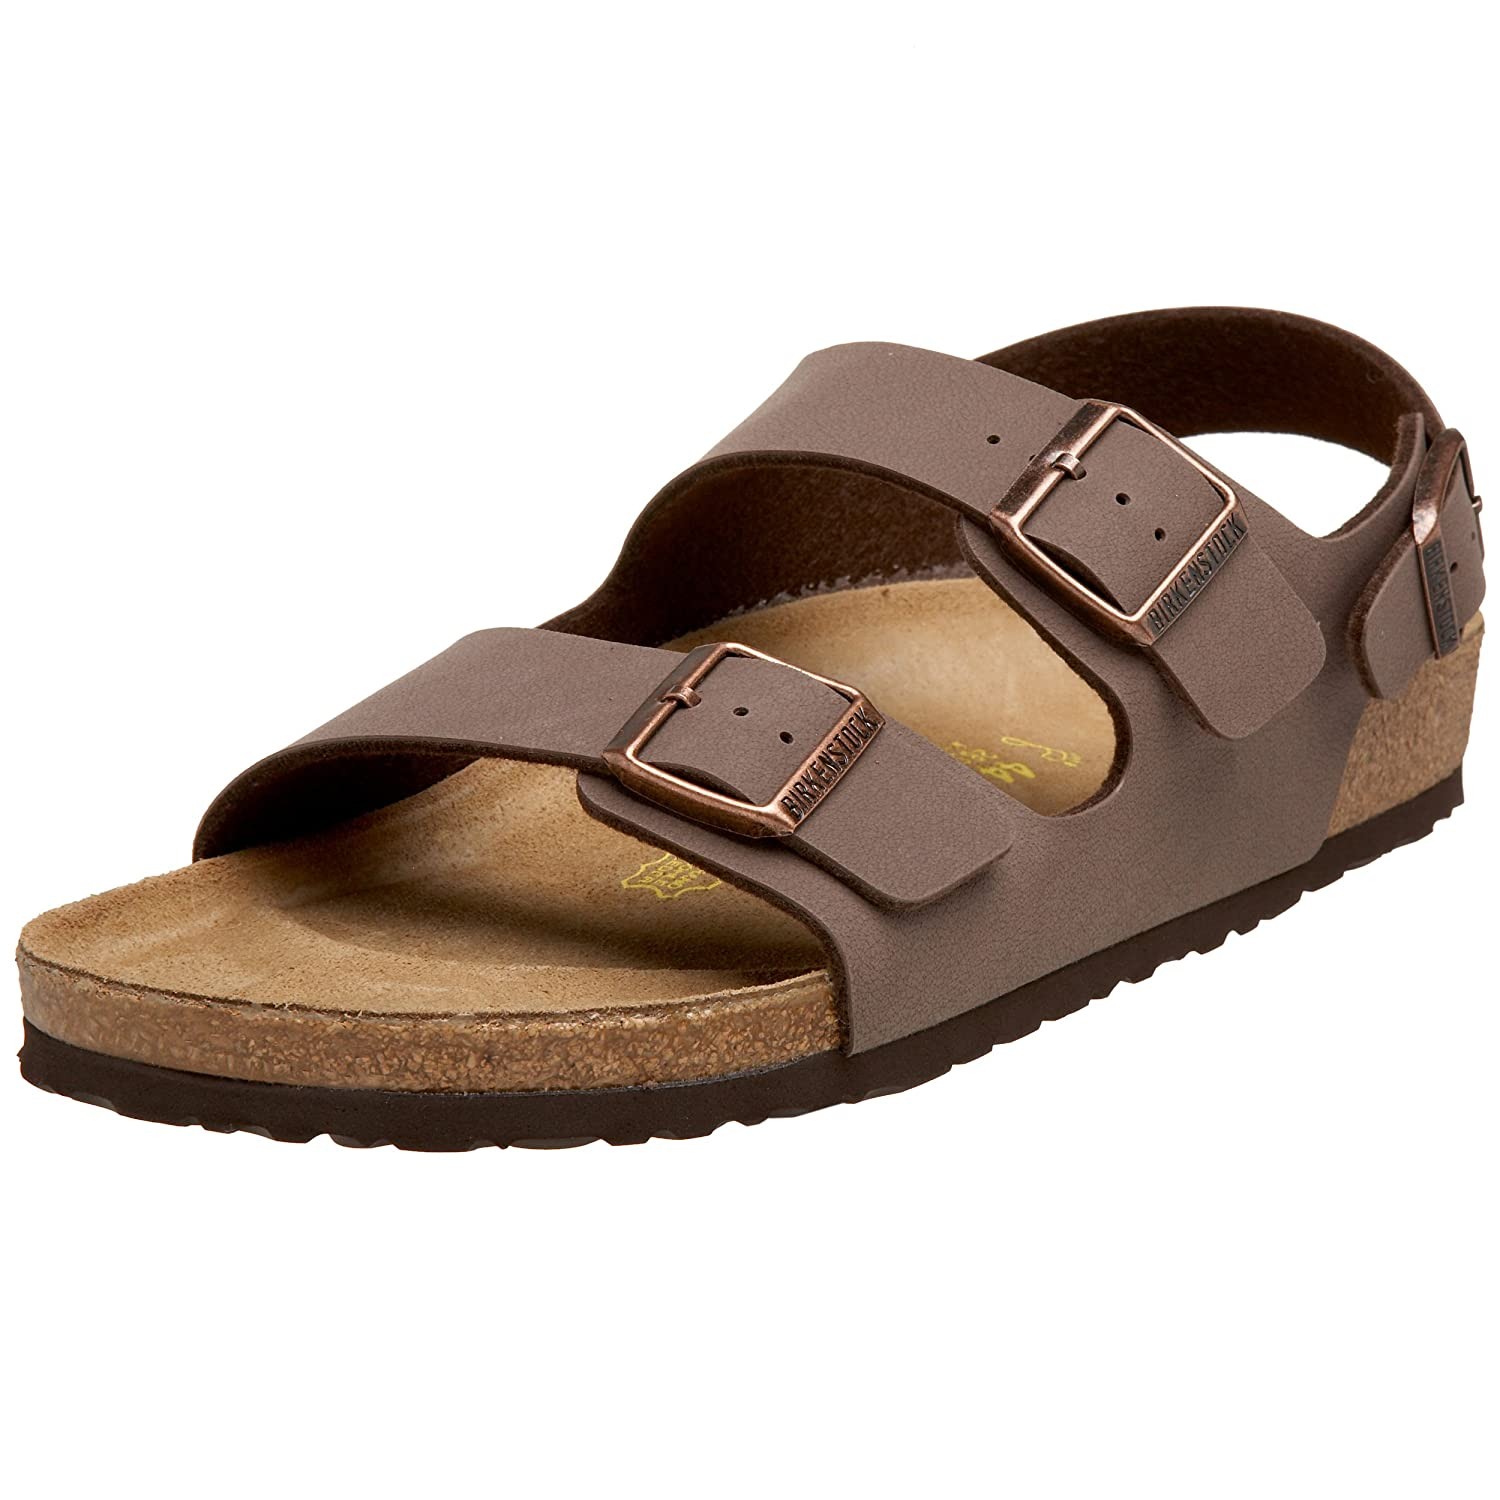 e097a9302894 Amazon.com  Birkenstock Milano Unisex Leather Sandal  Shoes